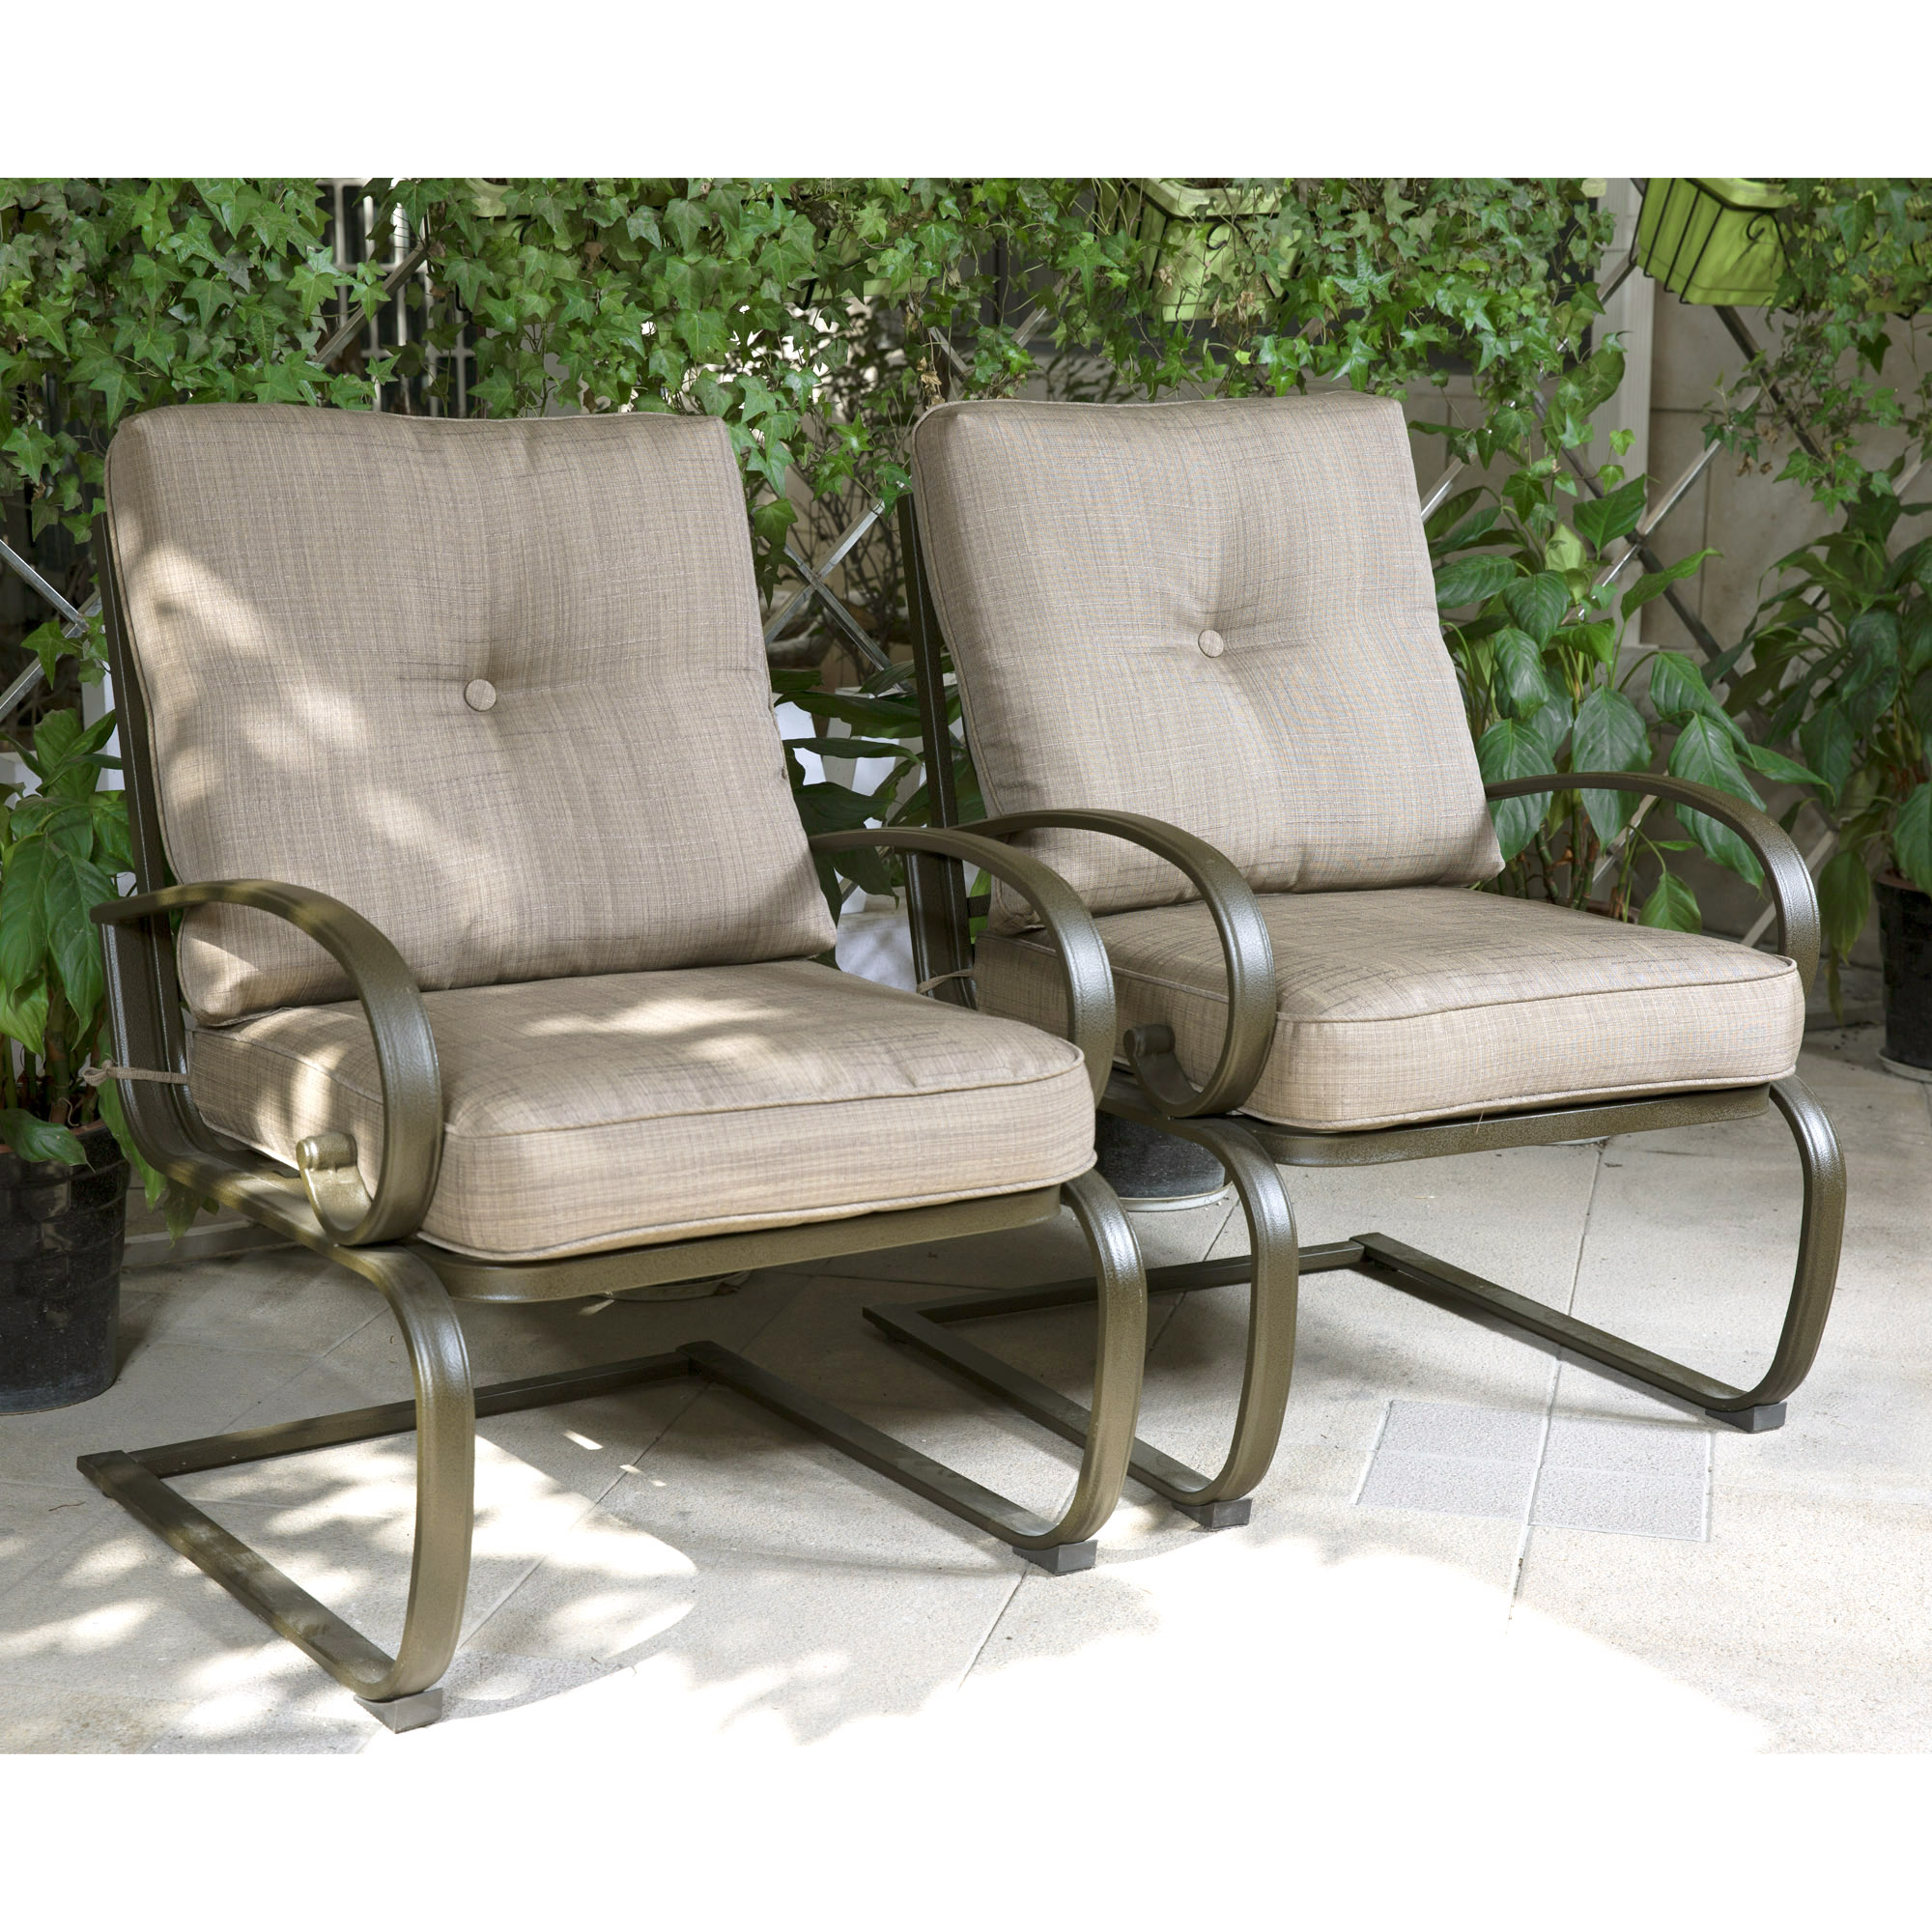 finefind set of 2 club chairs outdoor patio wrought iron dining chairs garden furniture seating chairs set gradient brown cushion